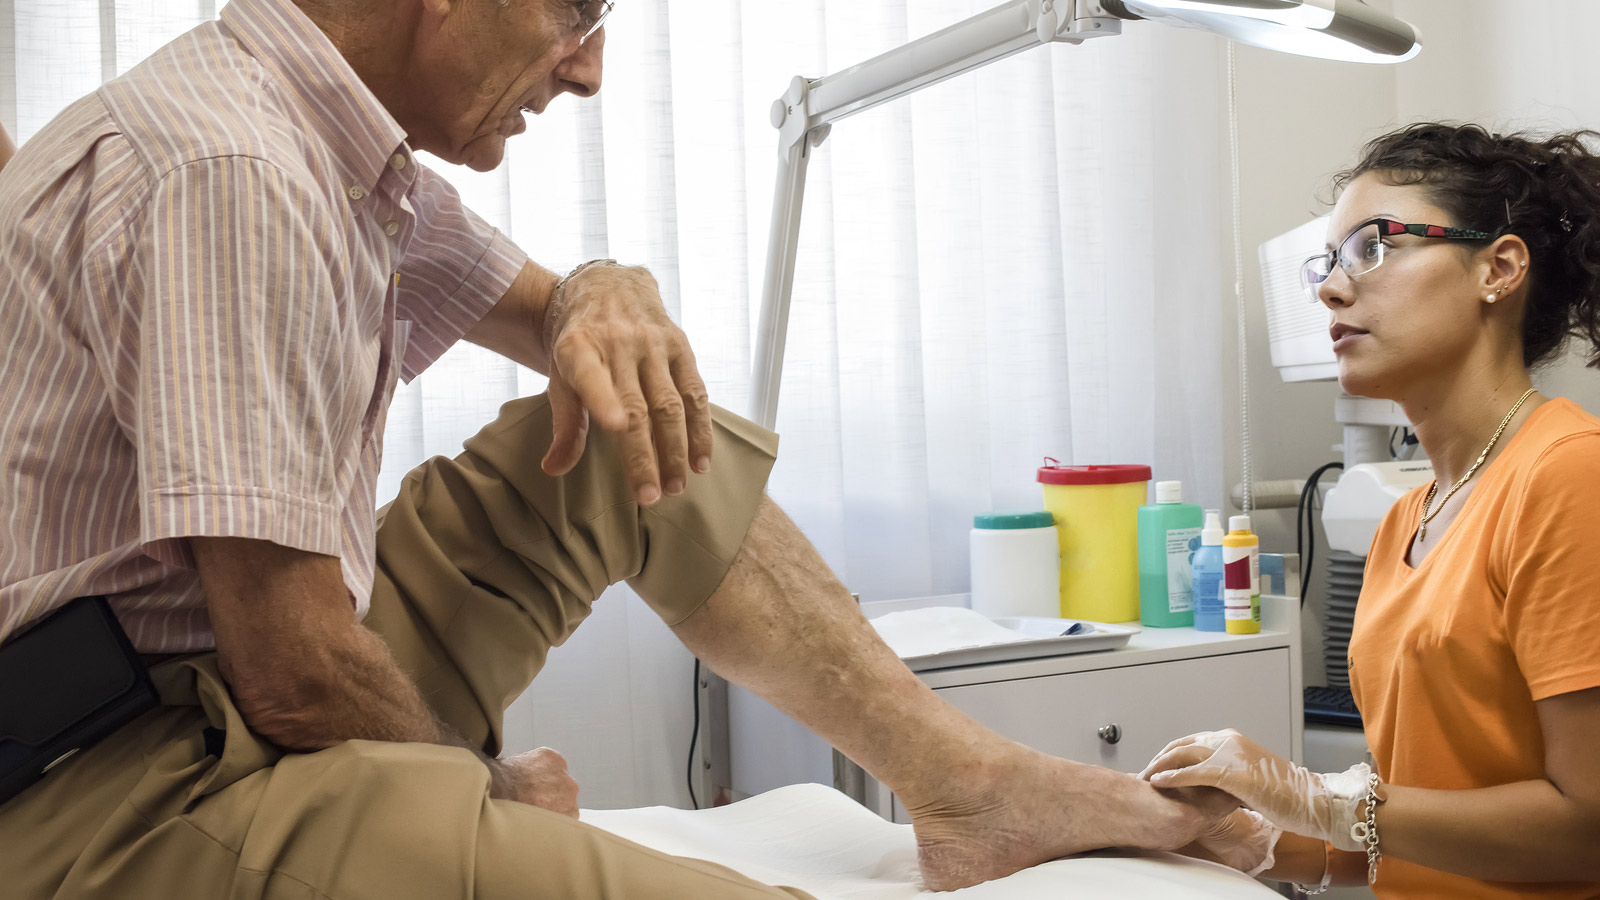 Diabetic Foot Care and Products